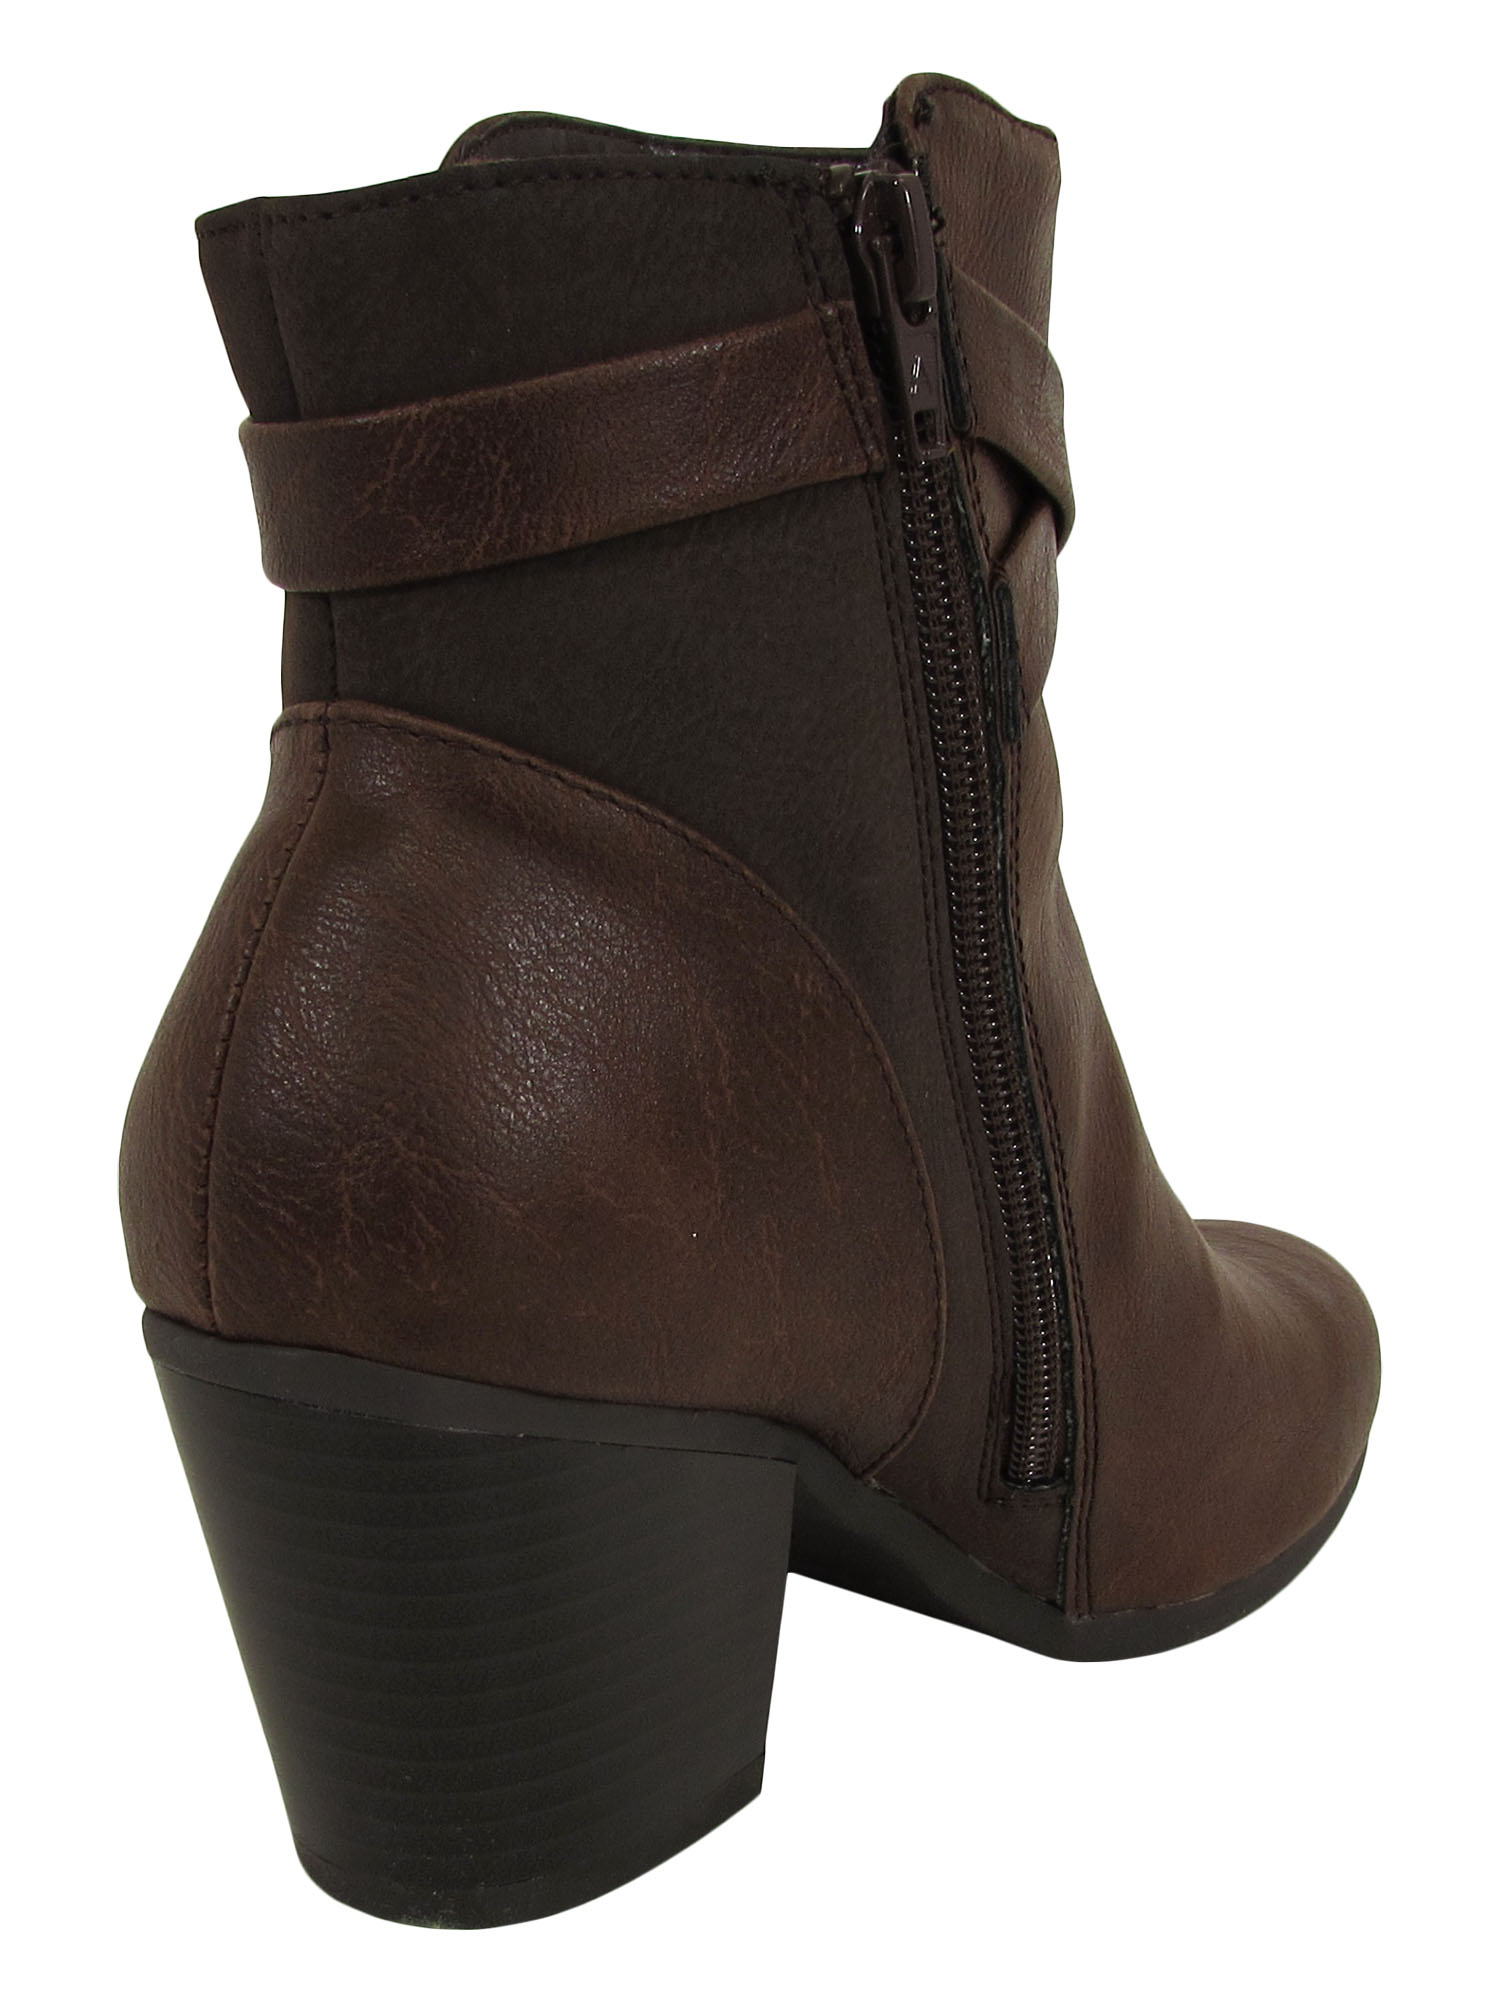 A2 Stiefel by Aerosoles Damenschuhe Invitation Heeled Ankle Stiefel A2 66265f